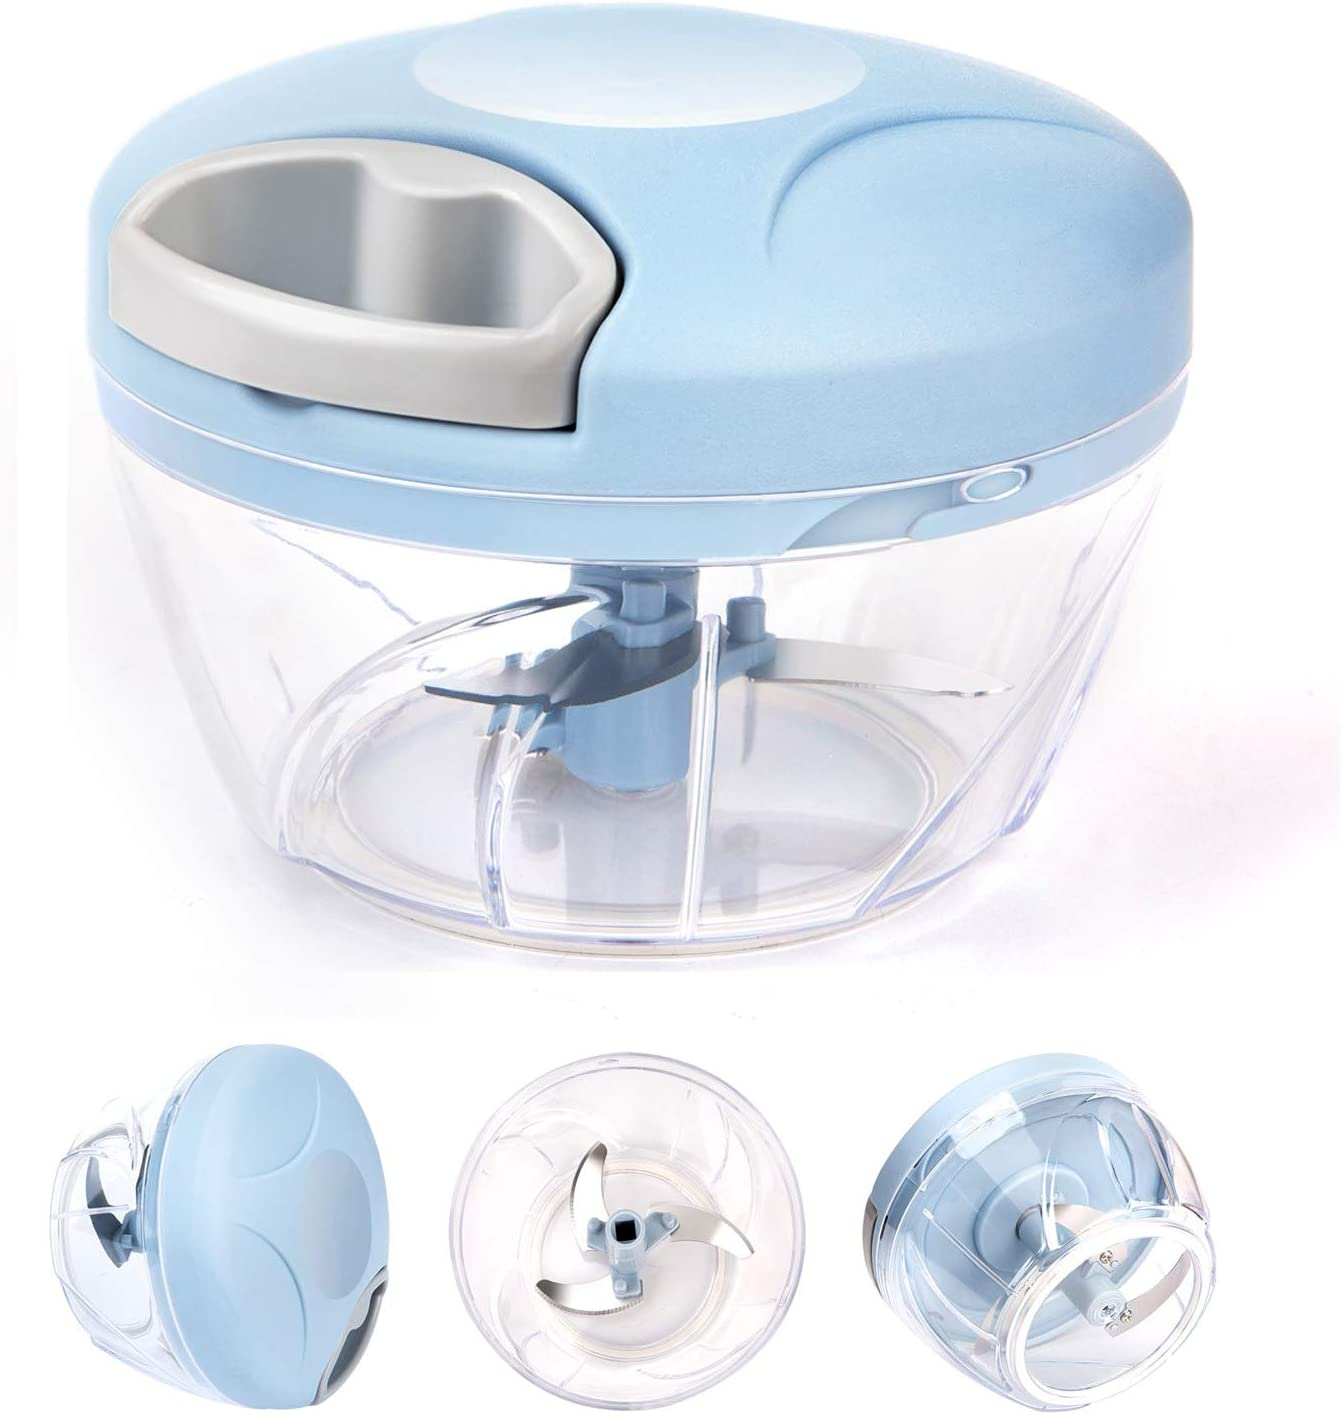 Yeaky Mini Food Chopper Pull Food, Veggie Chopper, Onion Chopper Manual Food Processor with Stainless Steel Blades, for Vegetable, Nuts, Garlic, Salad, Puree and Pestos